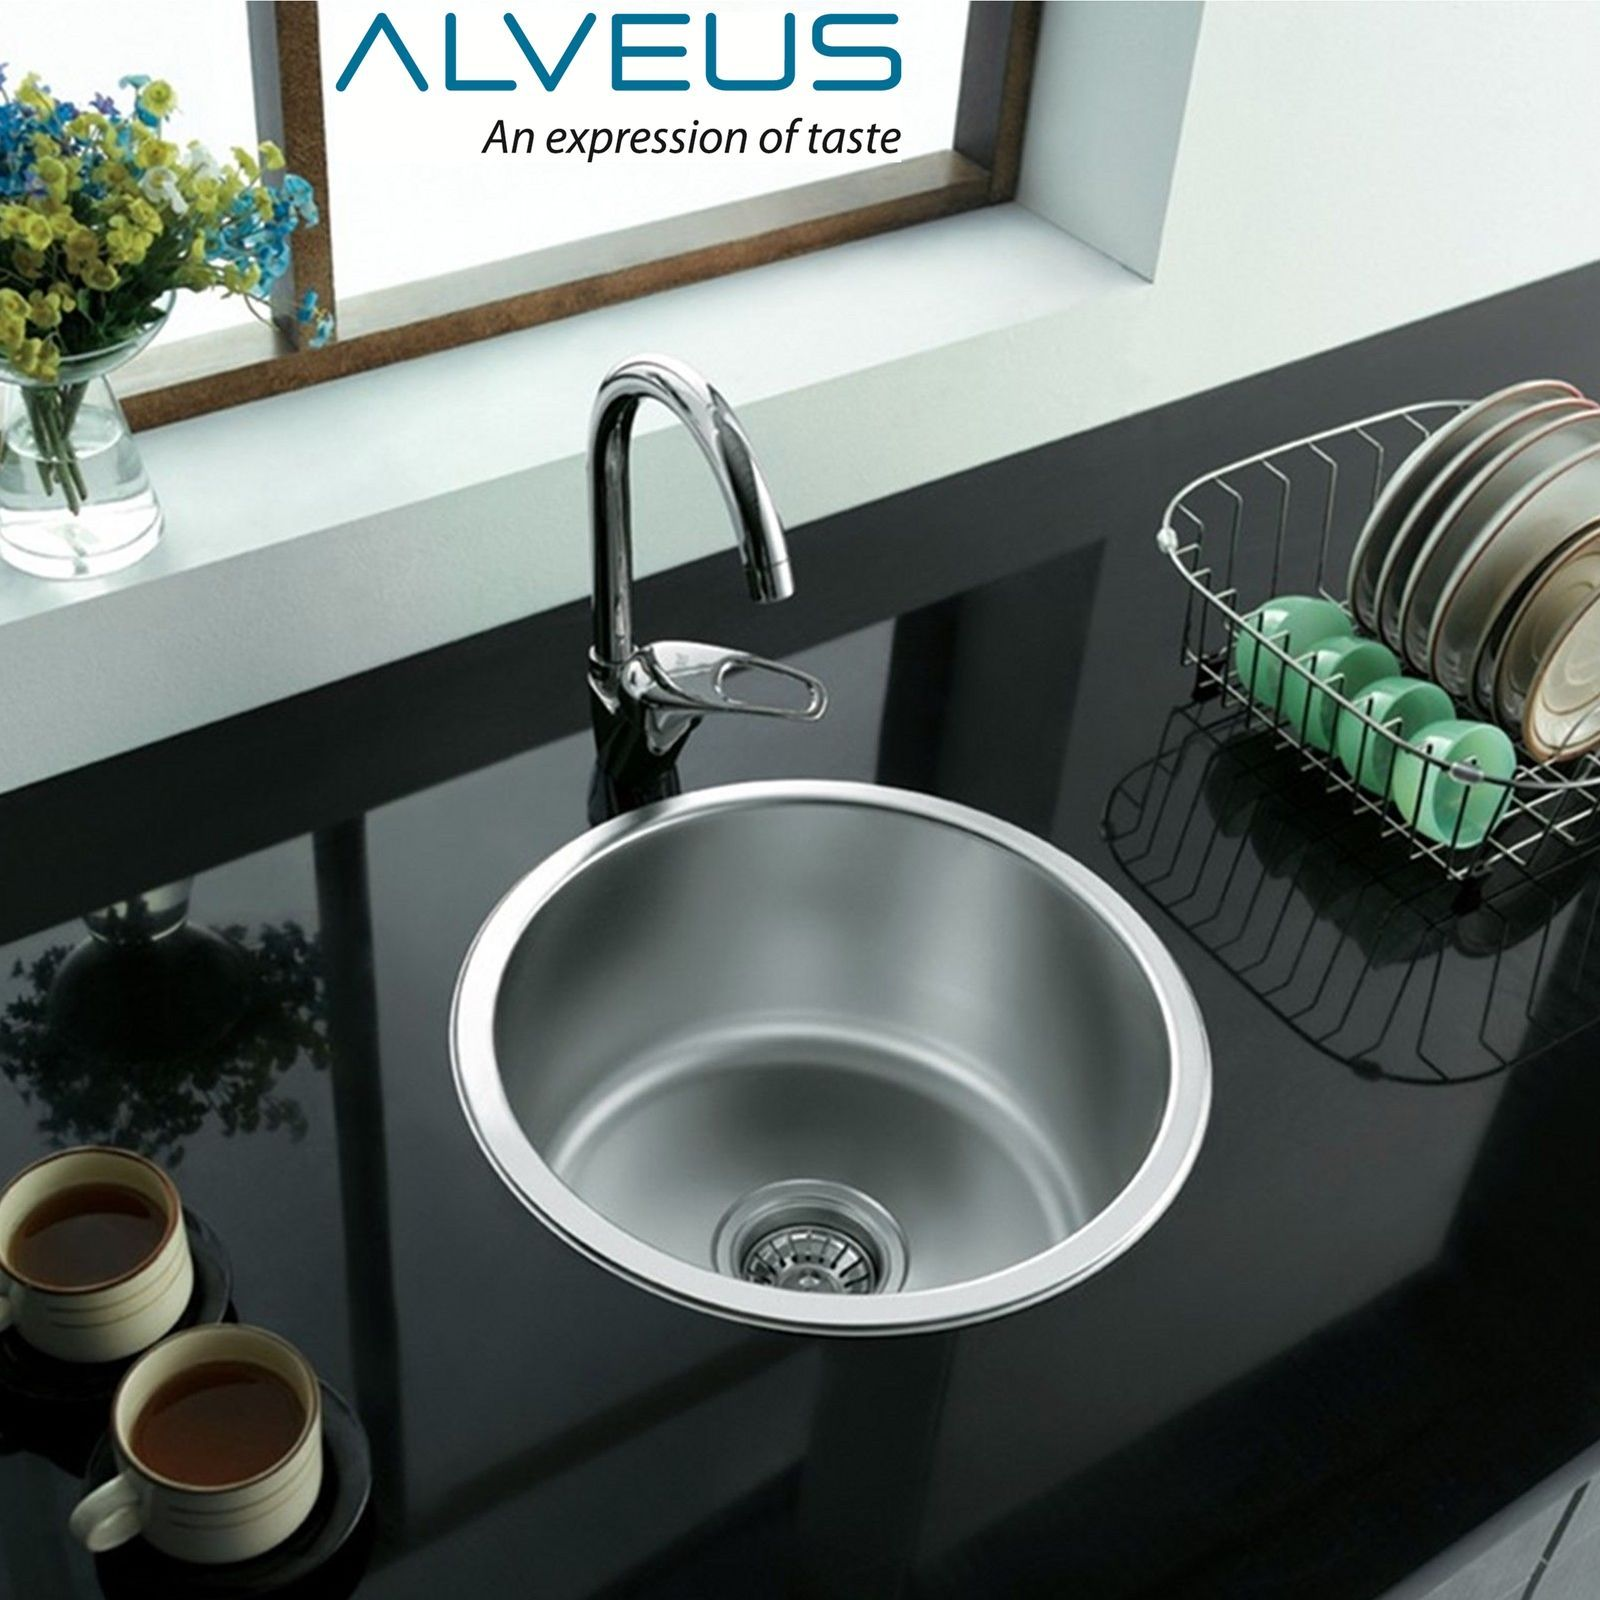 Alveus Single 1 0 Bowl Inset Round Stainless Steel Kitchen Sink Plumbing Kit Small Kitchen Sink Stainless Steel Kitchen Sink Best Kitchen Sinks